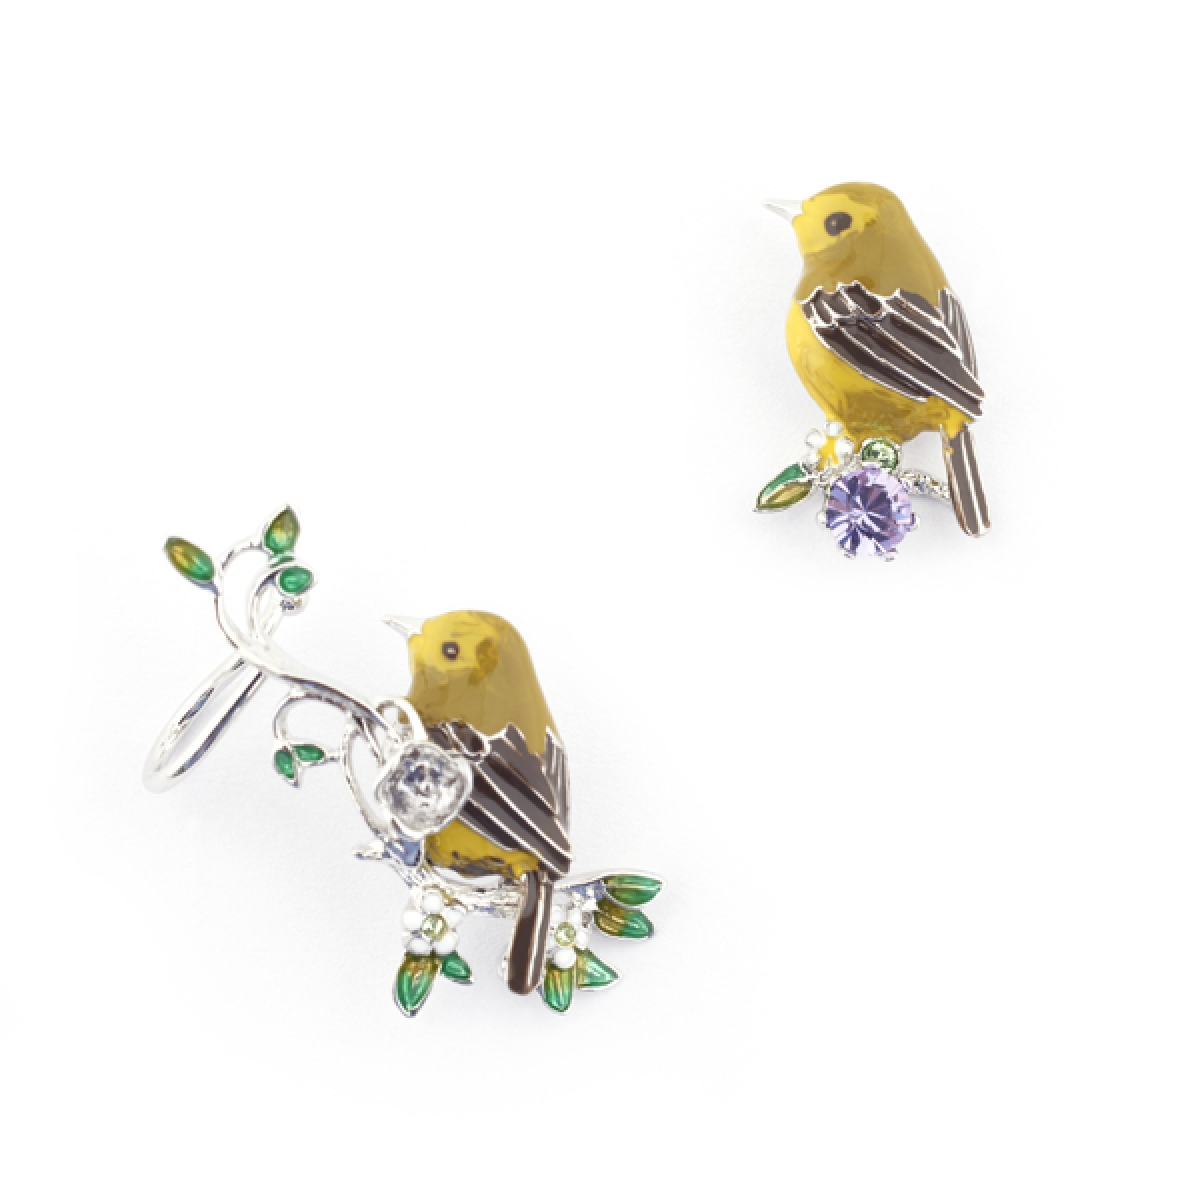 Gold Crest Stud & Ear Climber (Rhodium)